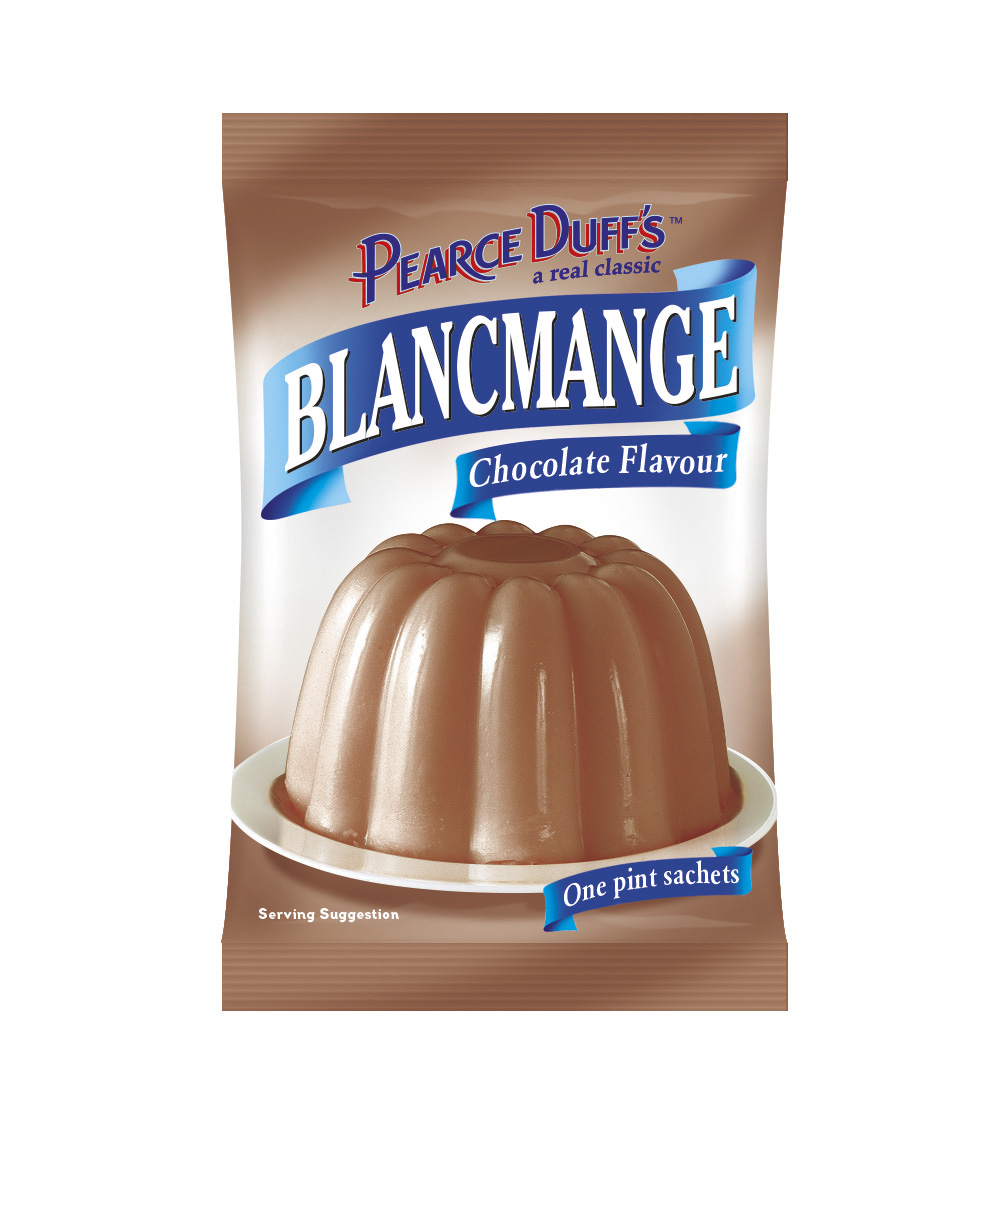 Blancmange Chocolate